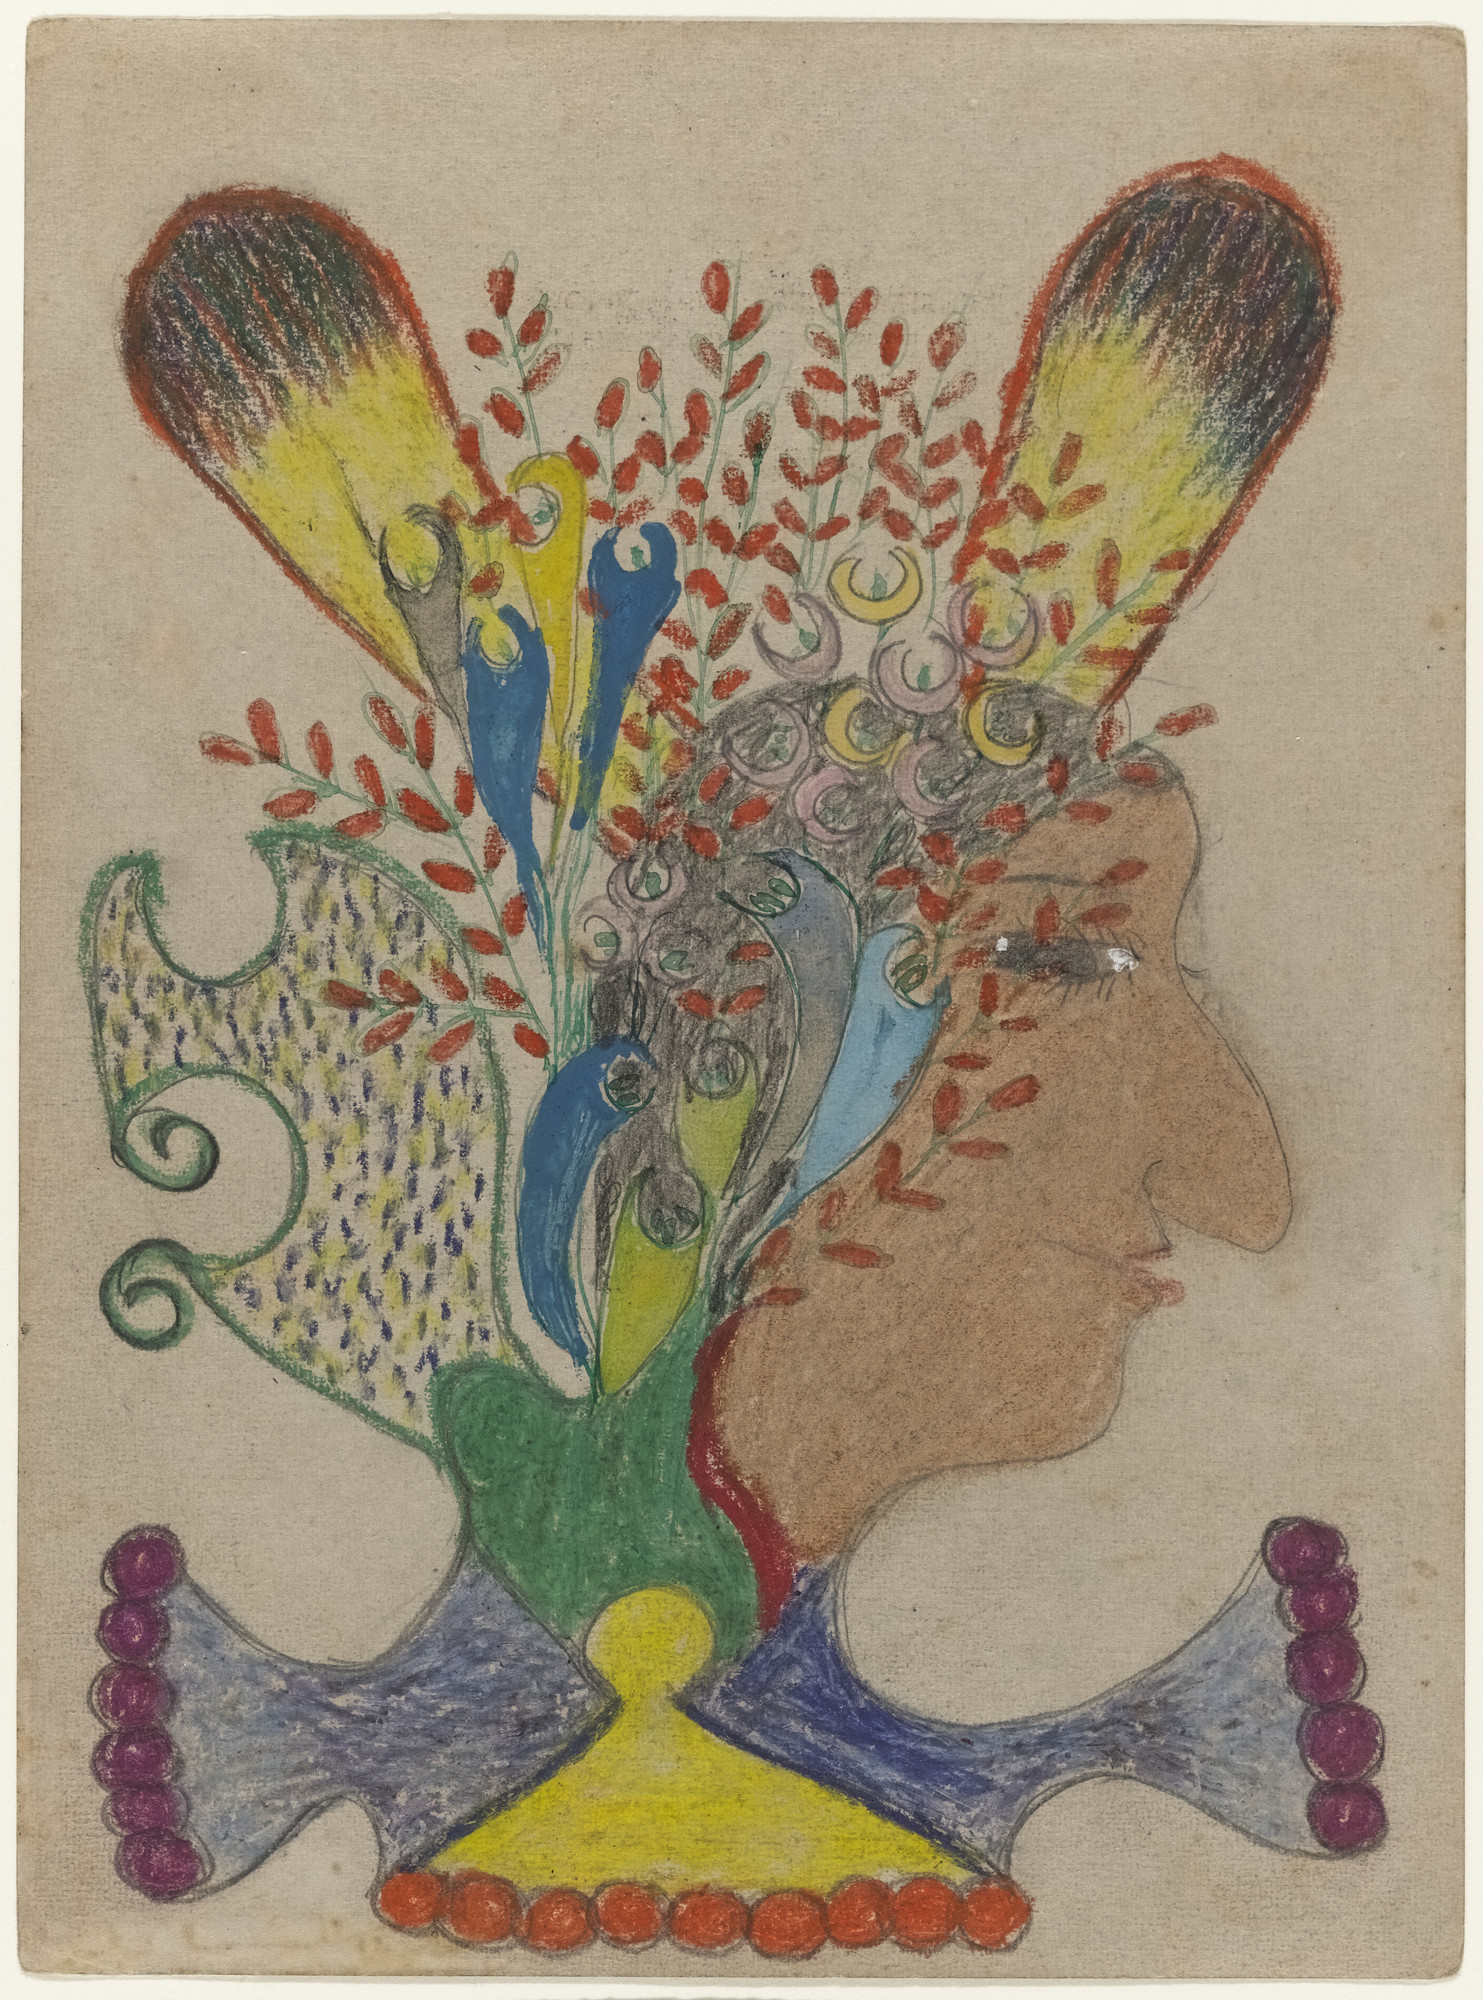 Minnie Evans. Untitled (Profile of Indian Woman). c. 1948